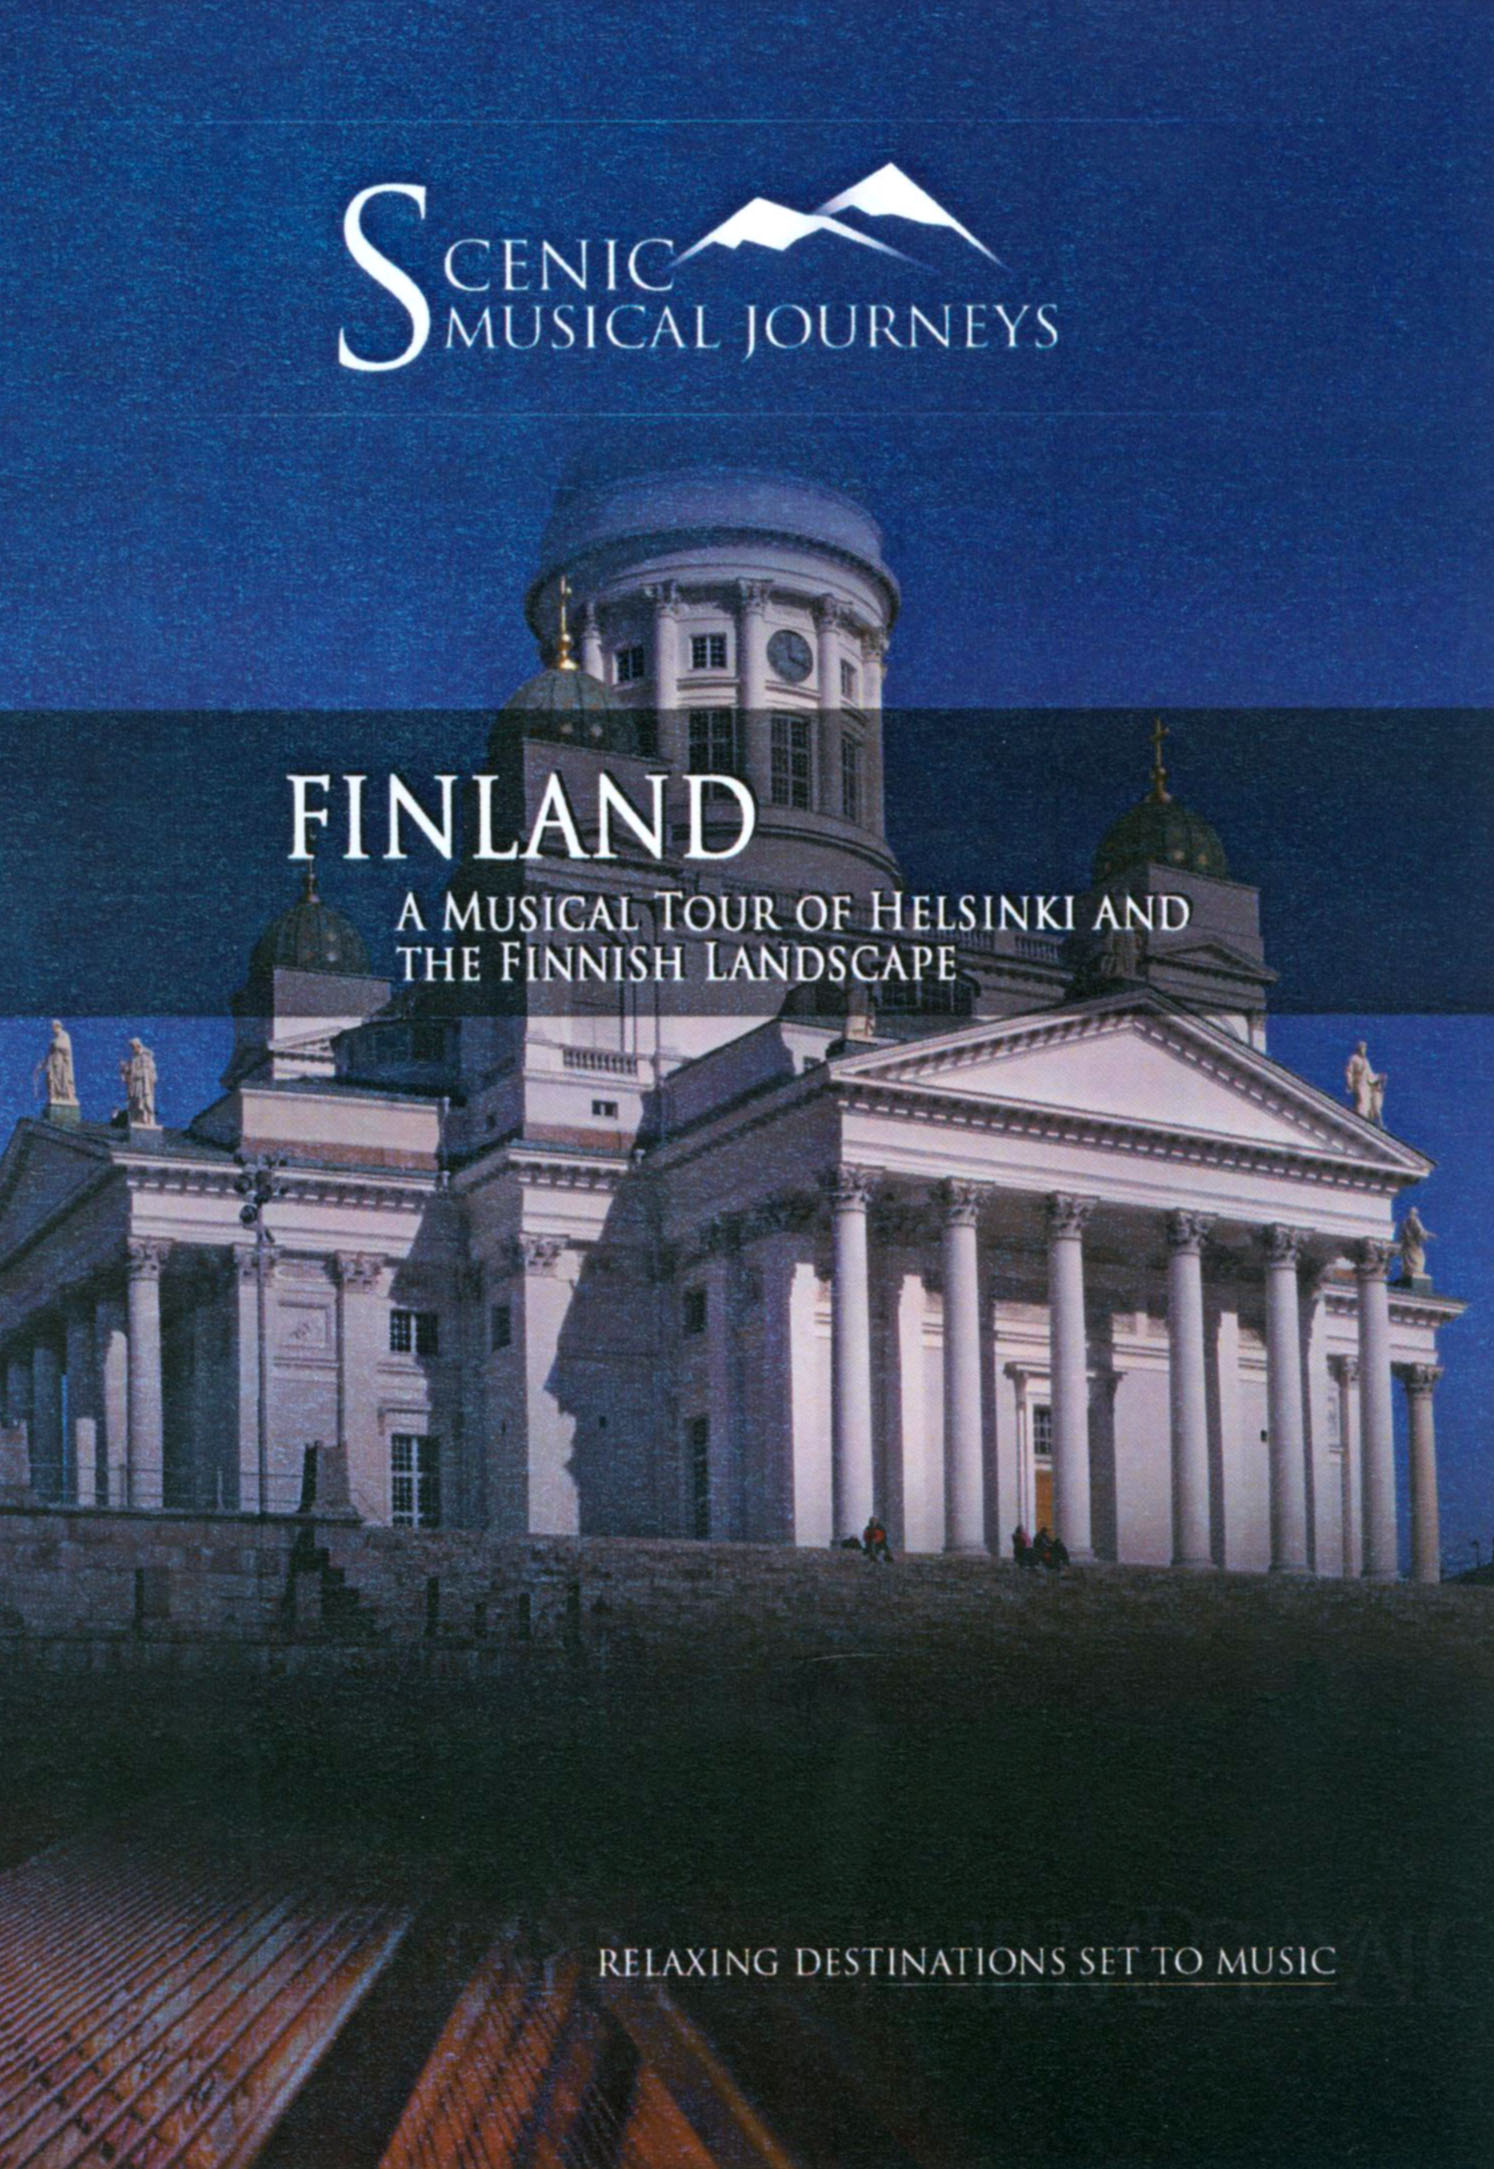 Scenic Musical Journeys: Finland - A Musical Tour of Helsinki and the Finnish Landscape